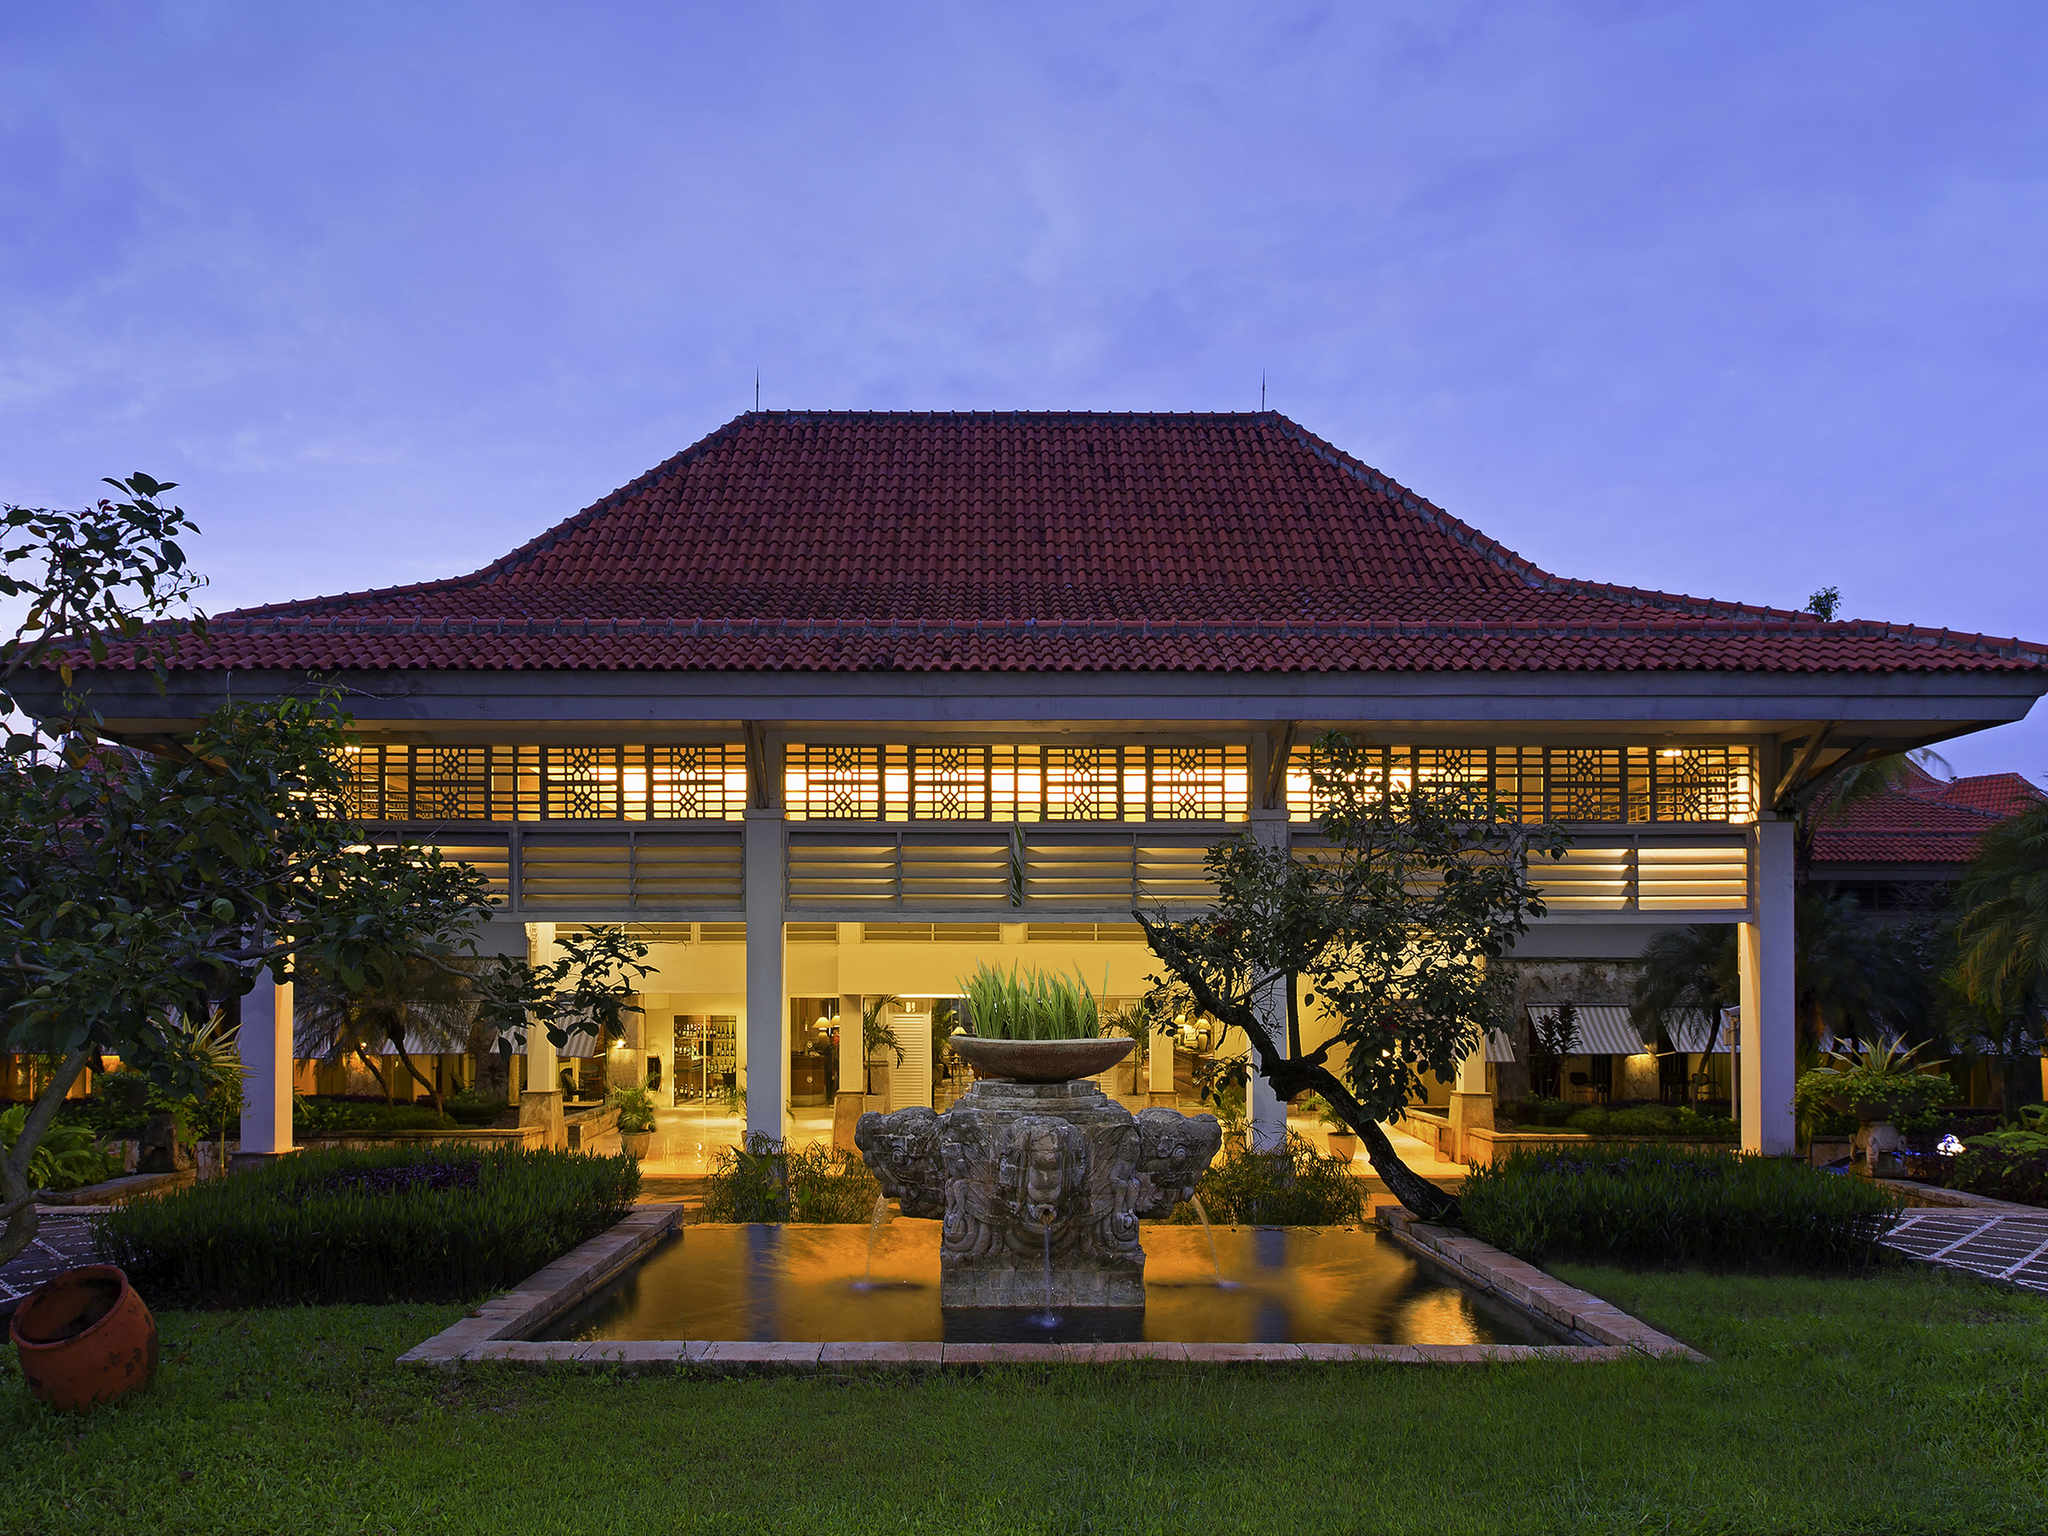 Hotel – Bandara International Hotel managed by AccorHotels